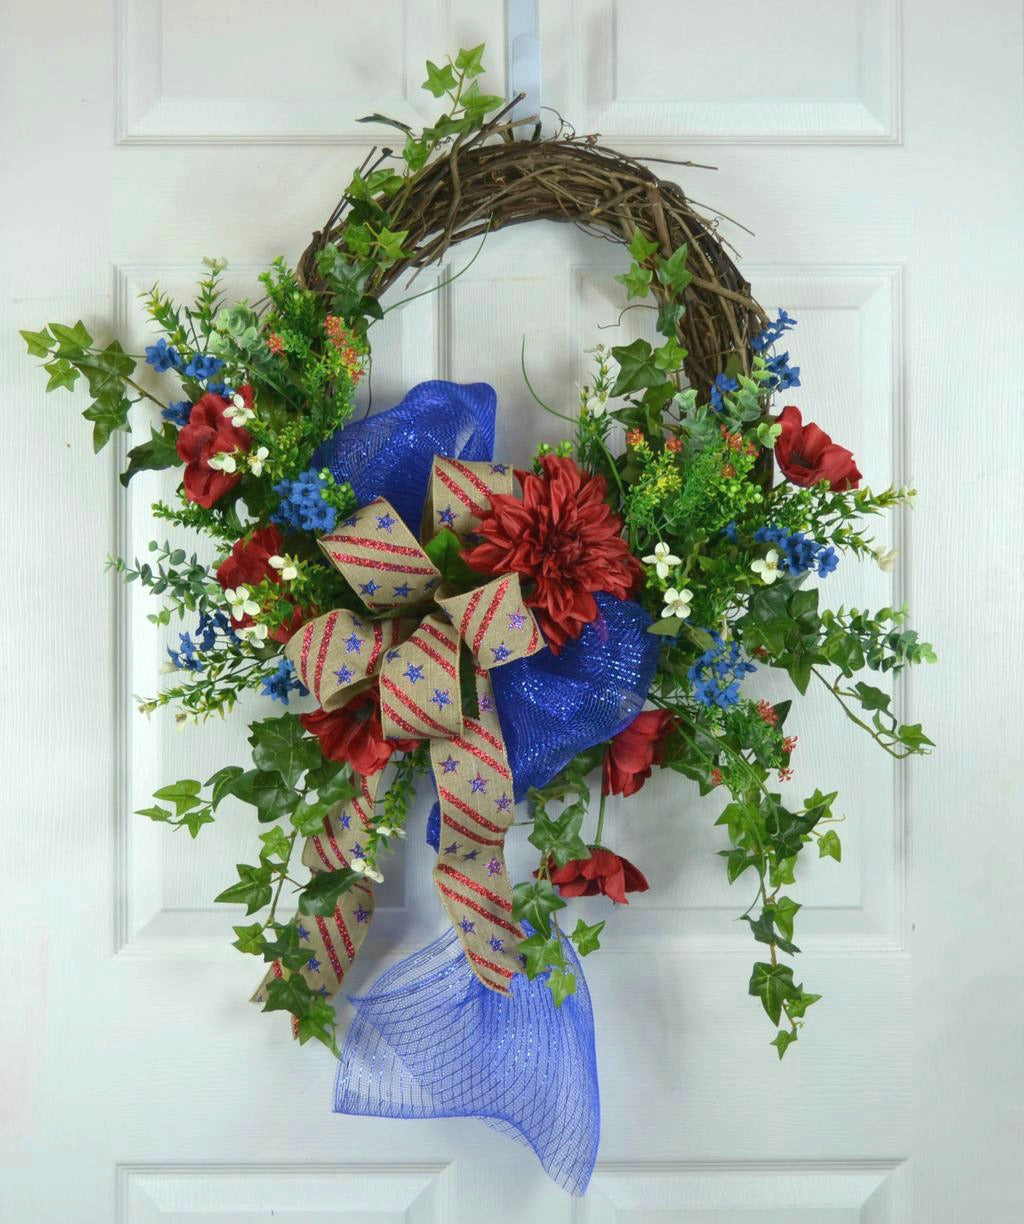 American Patriotic 4th of July Floral Front Door Wreath by Gaslight Floral Design.